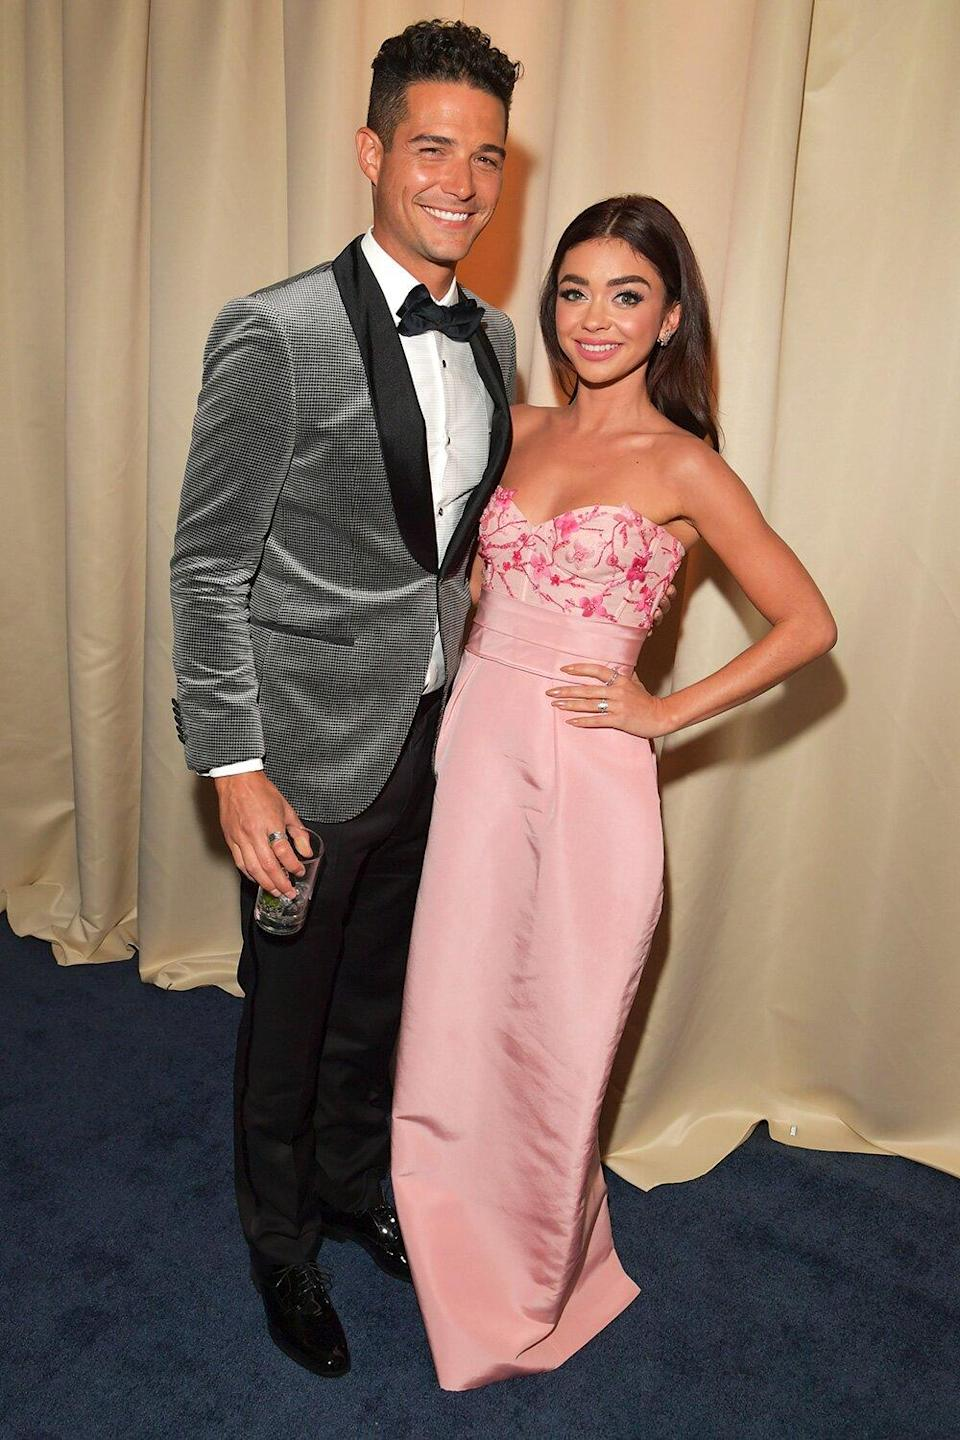 Sarah Hyland and Wells Adams Take the TikTok Couples Challenge: 'Poor Man's J.Lo and A-Rod'